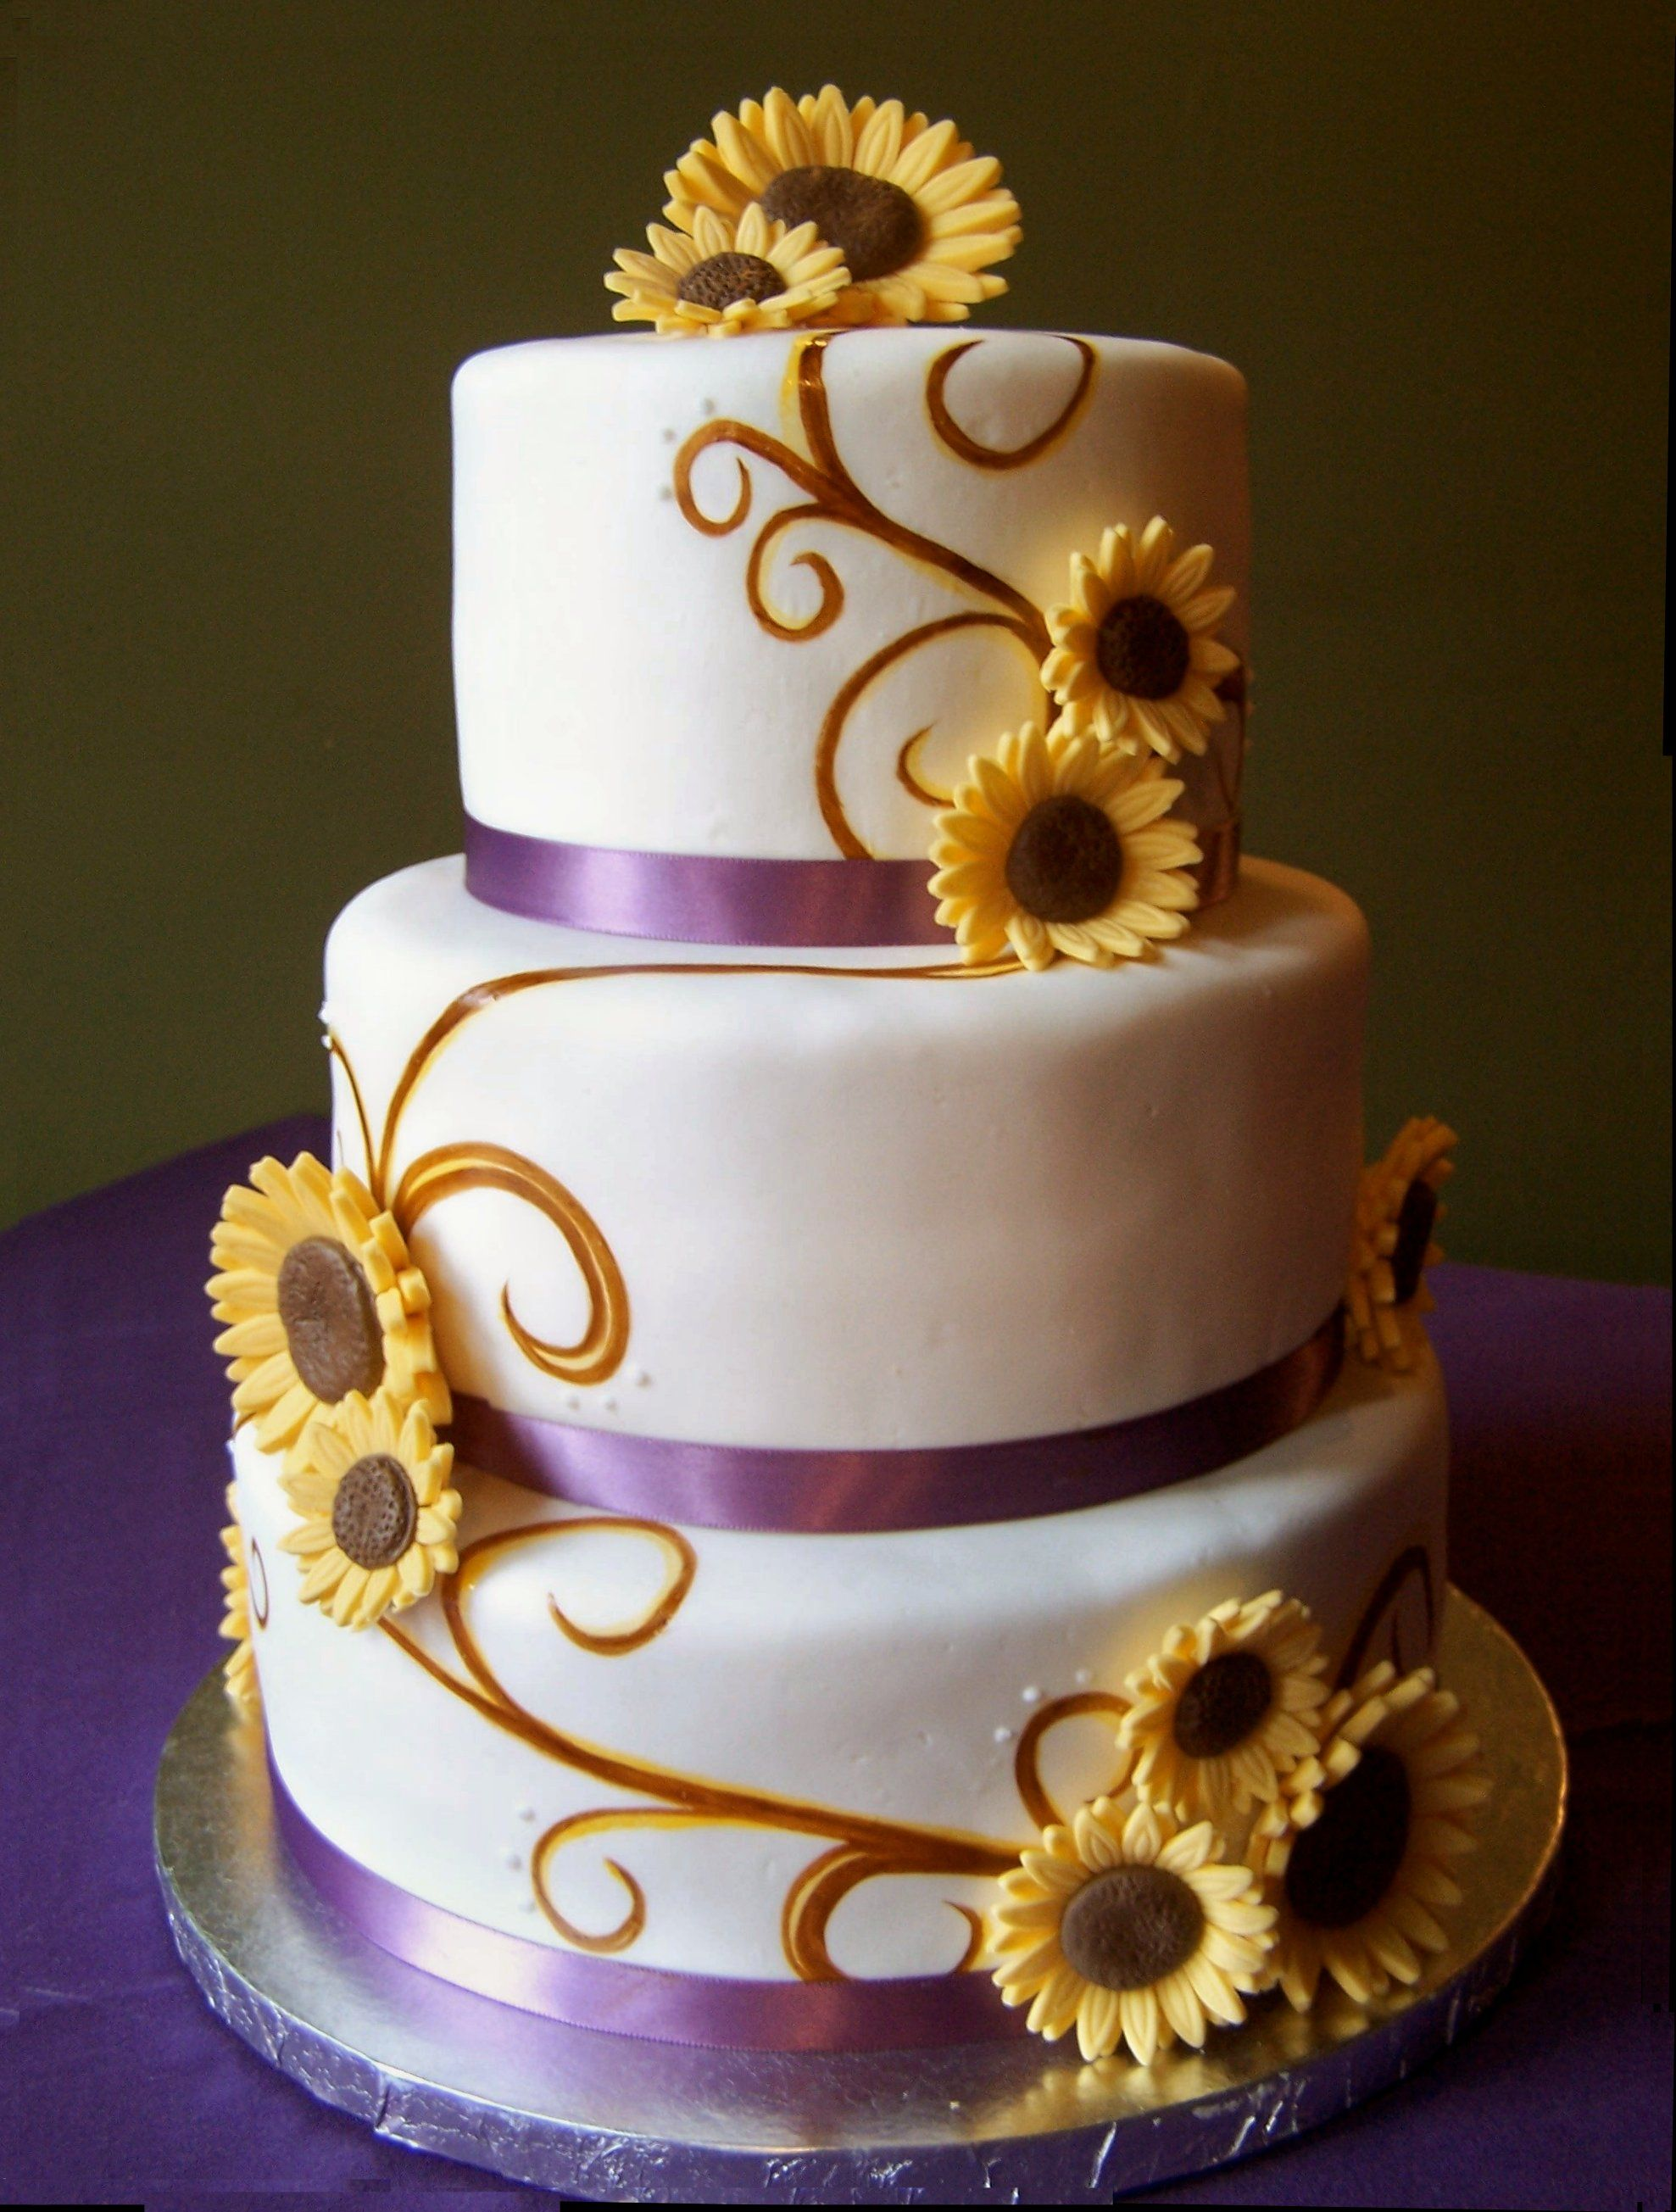 sunflower fall wedding cake sarah bowen painted fondant could also be nice fake wedding. Black Bedroom Furniture Sets. Home Design Ideas